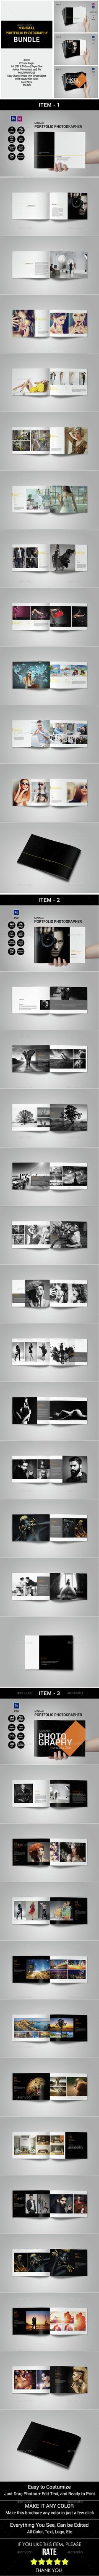 Minimal Portfolio Photography Bundle — Photoshop PSD #photography portfolio #photographer portfolio • Available here → https://graphicriver.net/item/minimal-portfolio-photography-bundle/14887426?ref=pxcr